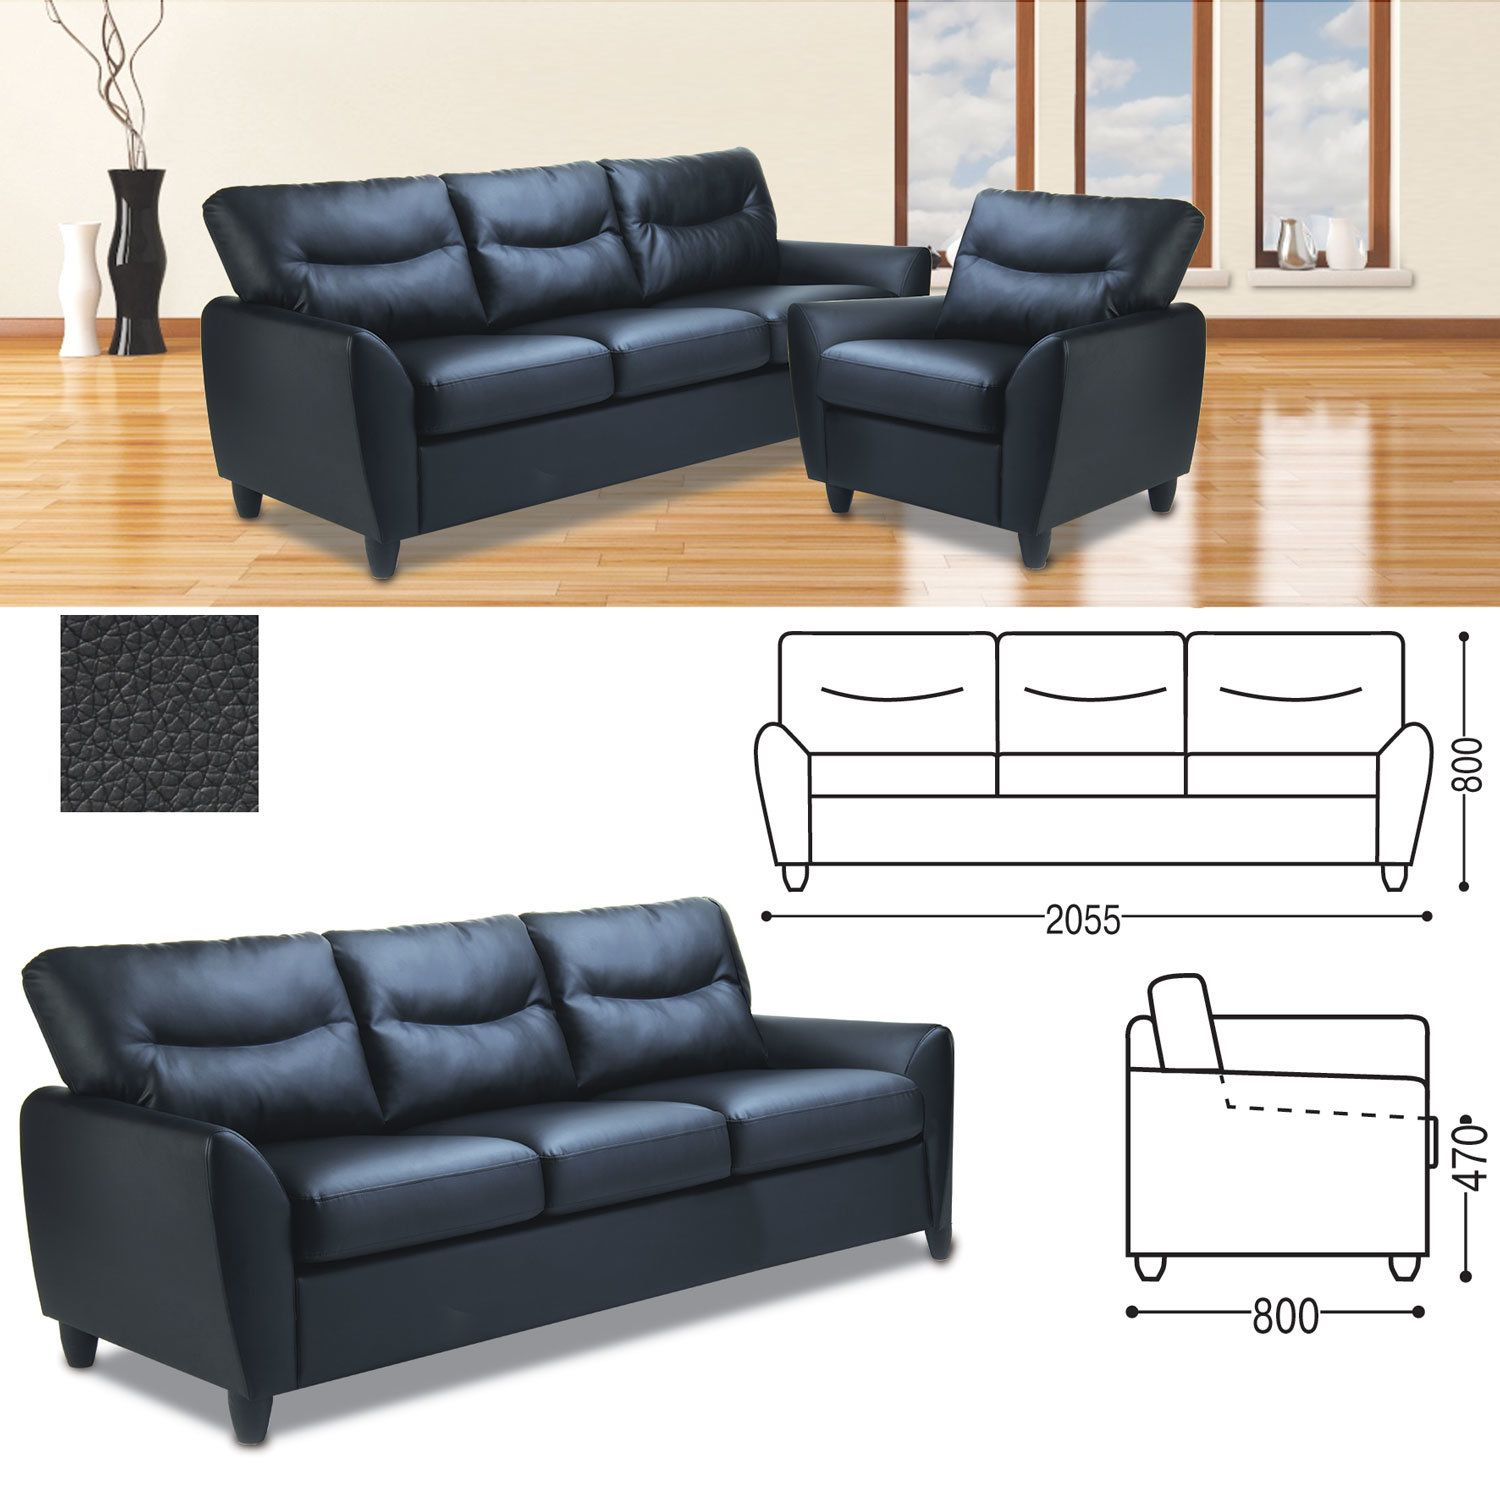 """RAMART / Sofa soft three-seater """"Napoli"""", 800x2055x800 mm, with armrests, eco-leather, black"""